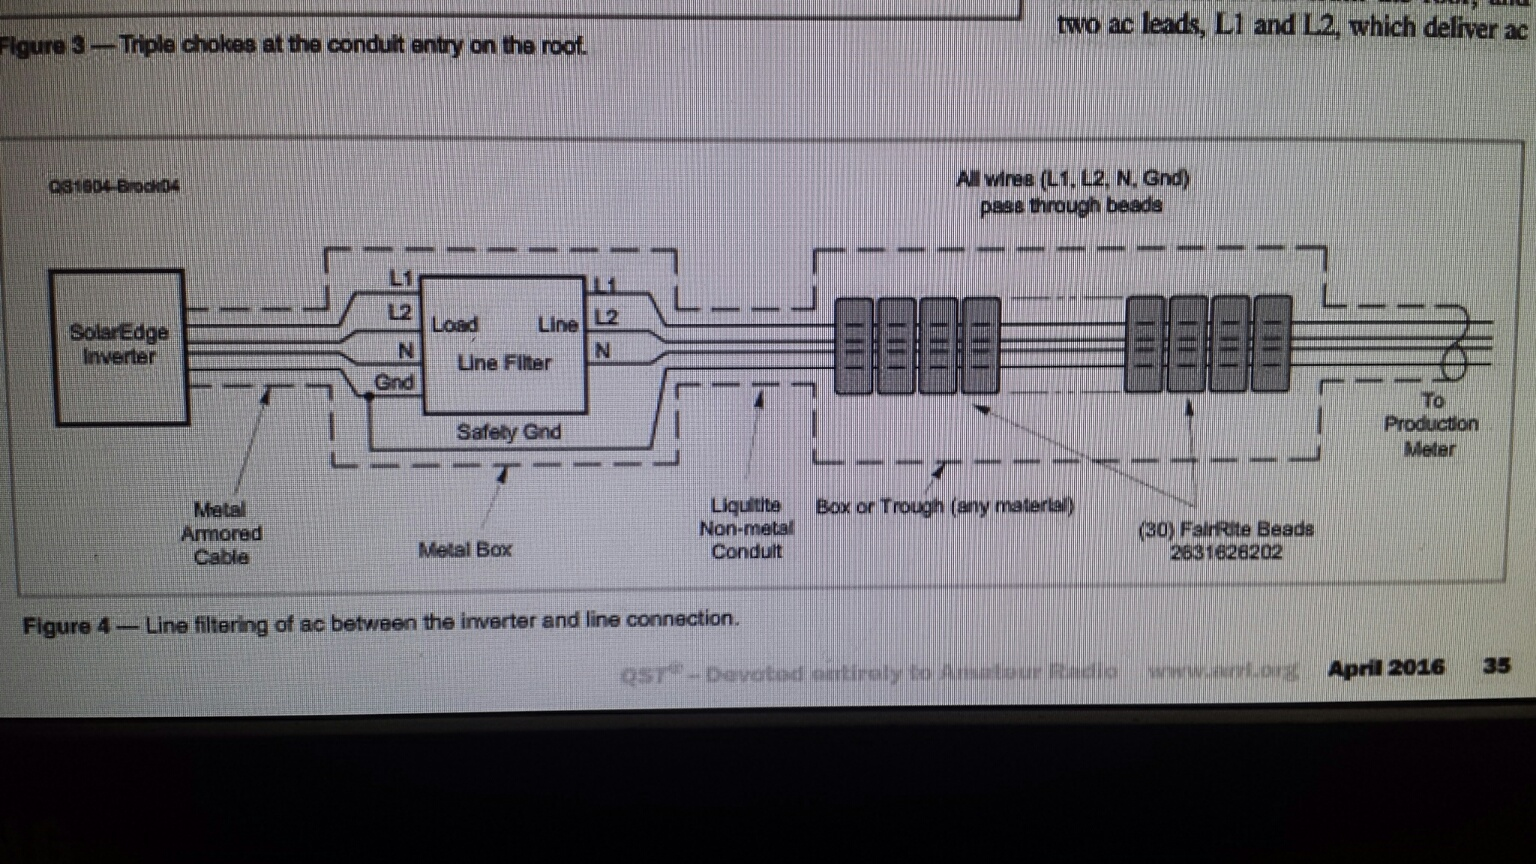 From Jhill 81 At Yahoocom Tue May 1 002215 2018 Diagram Likewise Cable Modem Router Also T Wireless U Verse Solar Inverter Rfi Choker